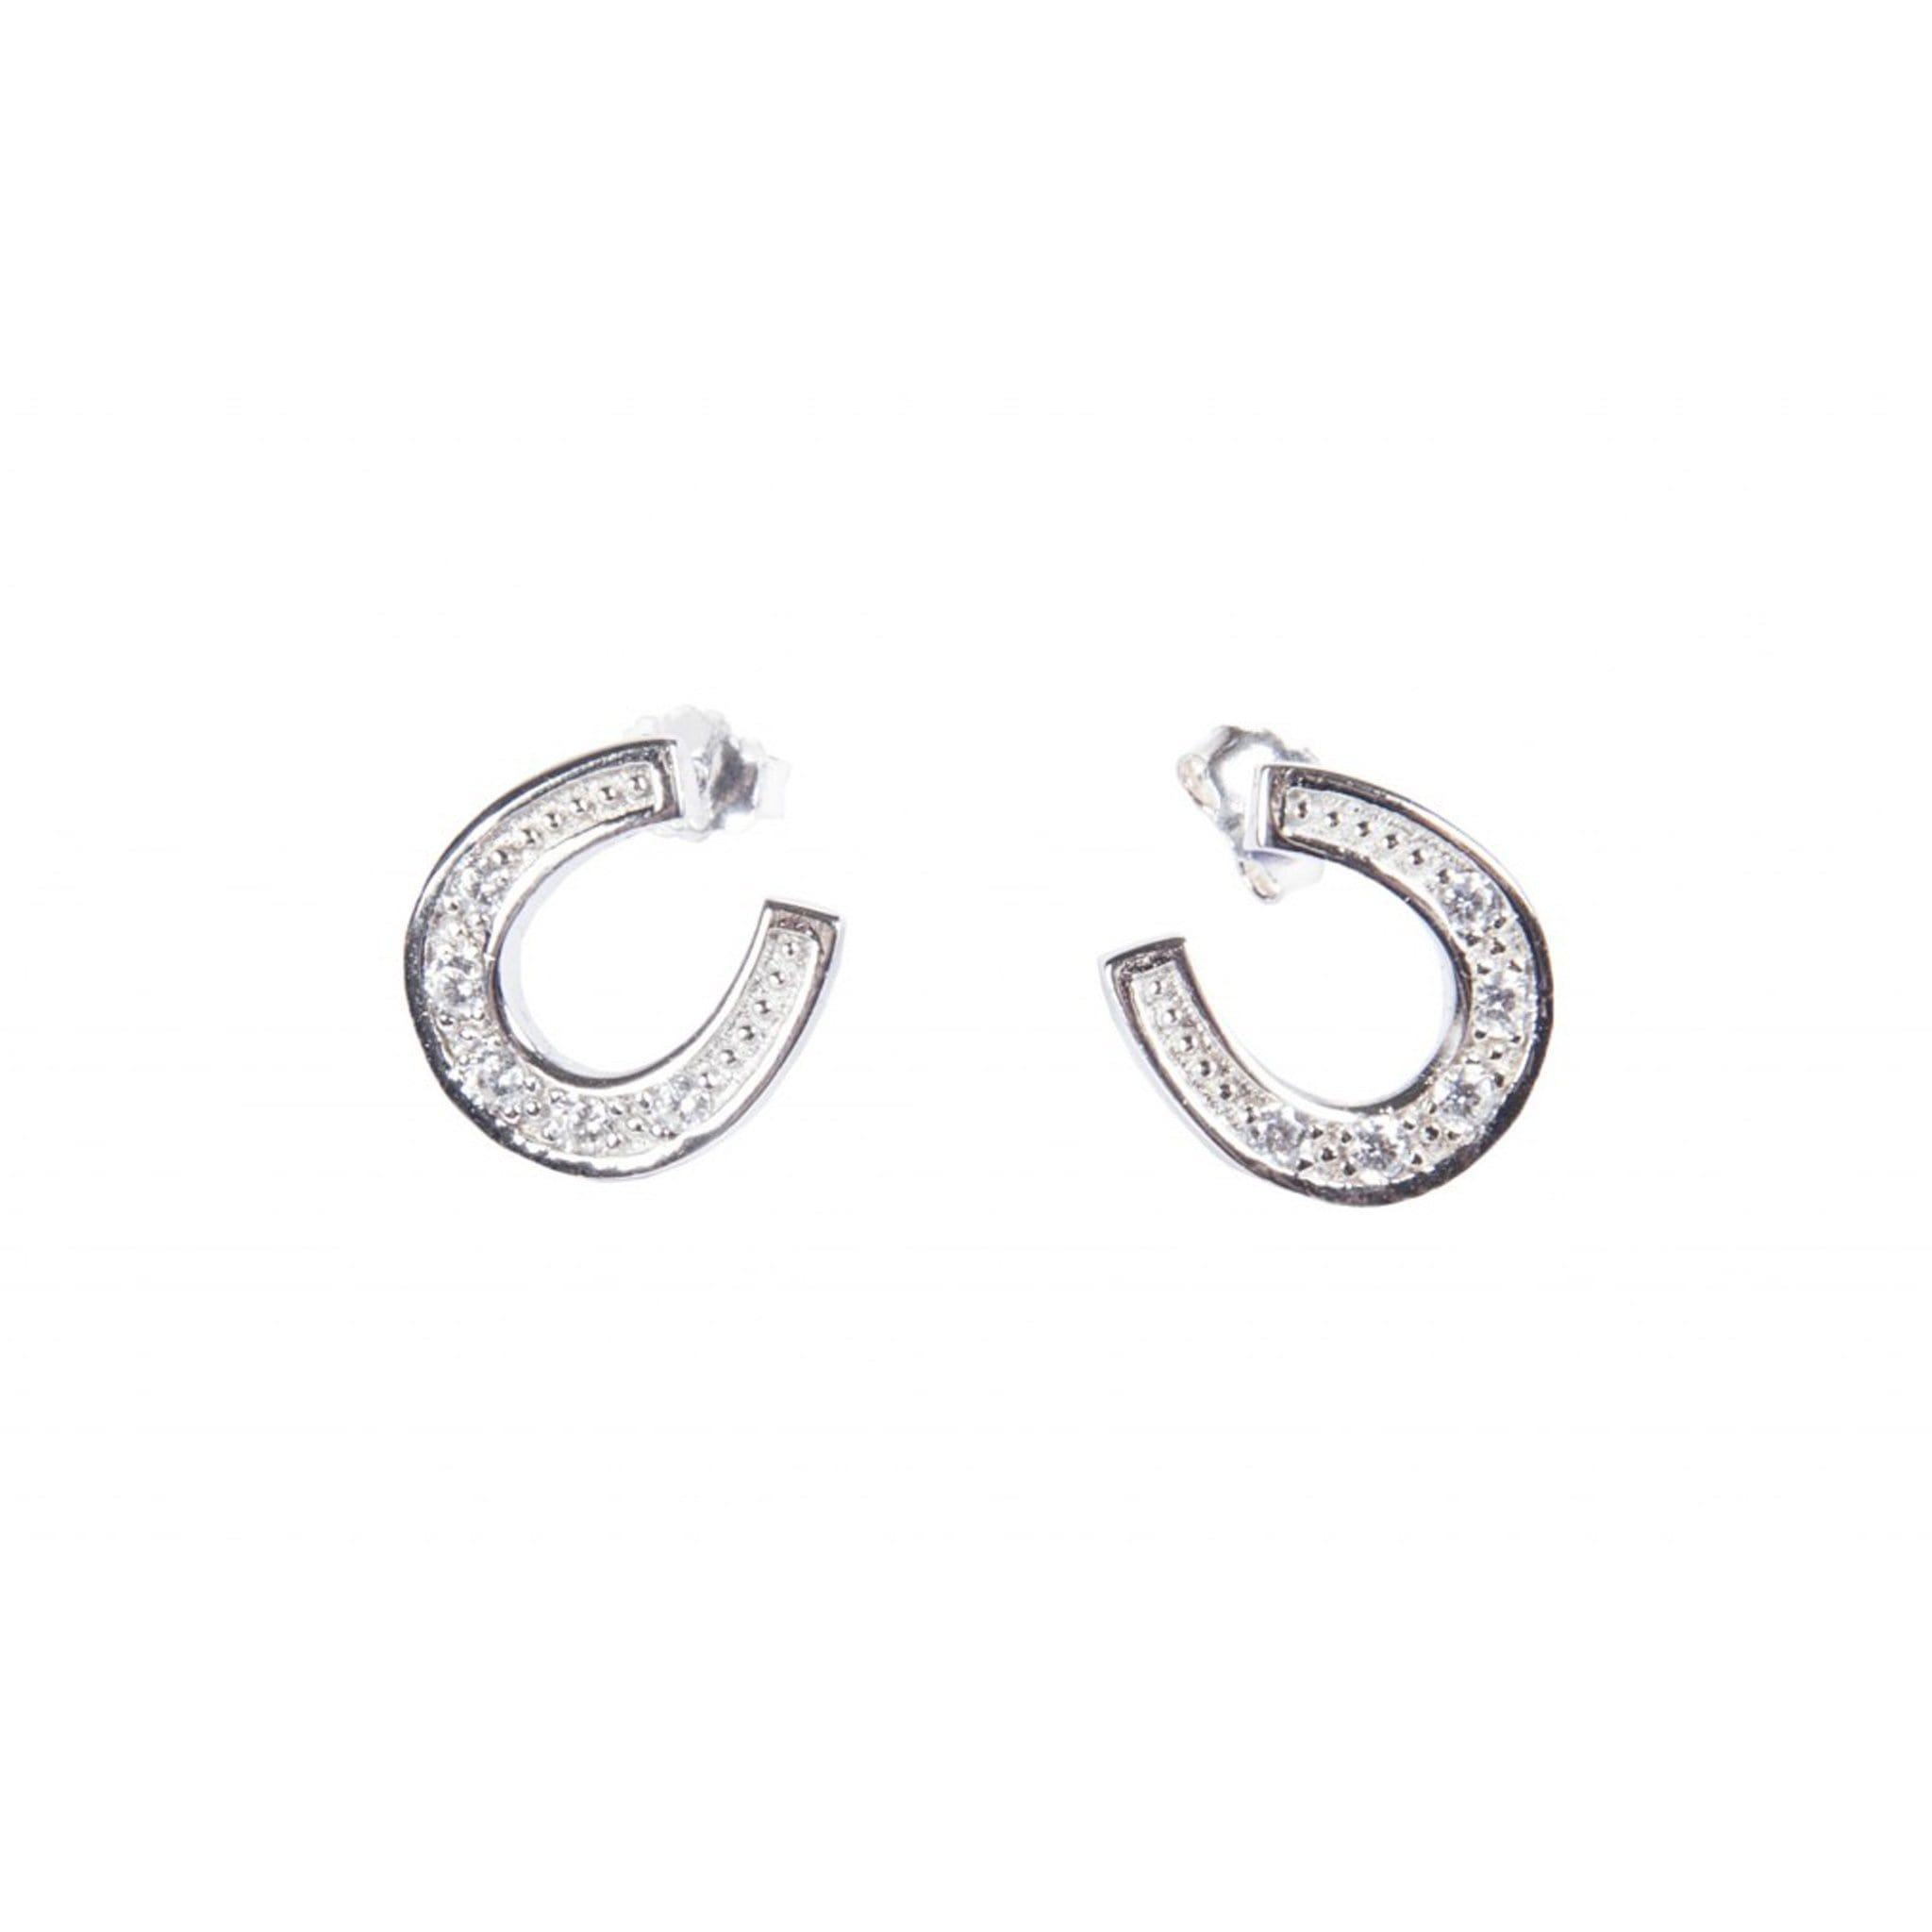 HKM Stirling Silver Diamanté Horseshoe Earrings 6080